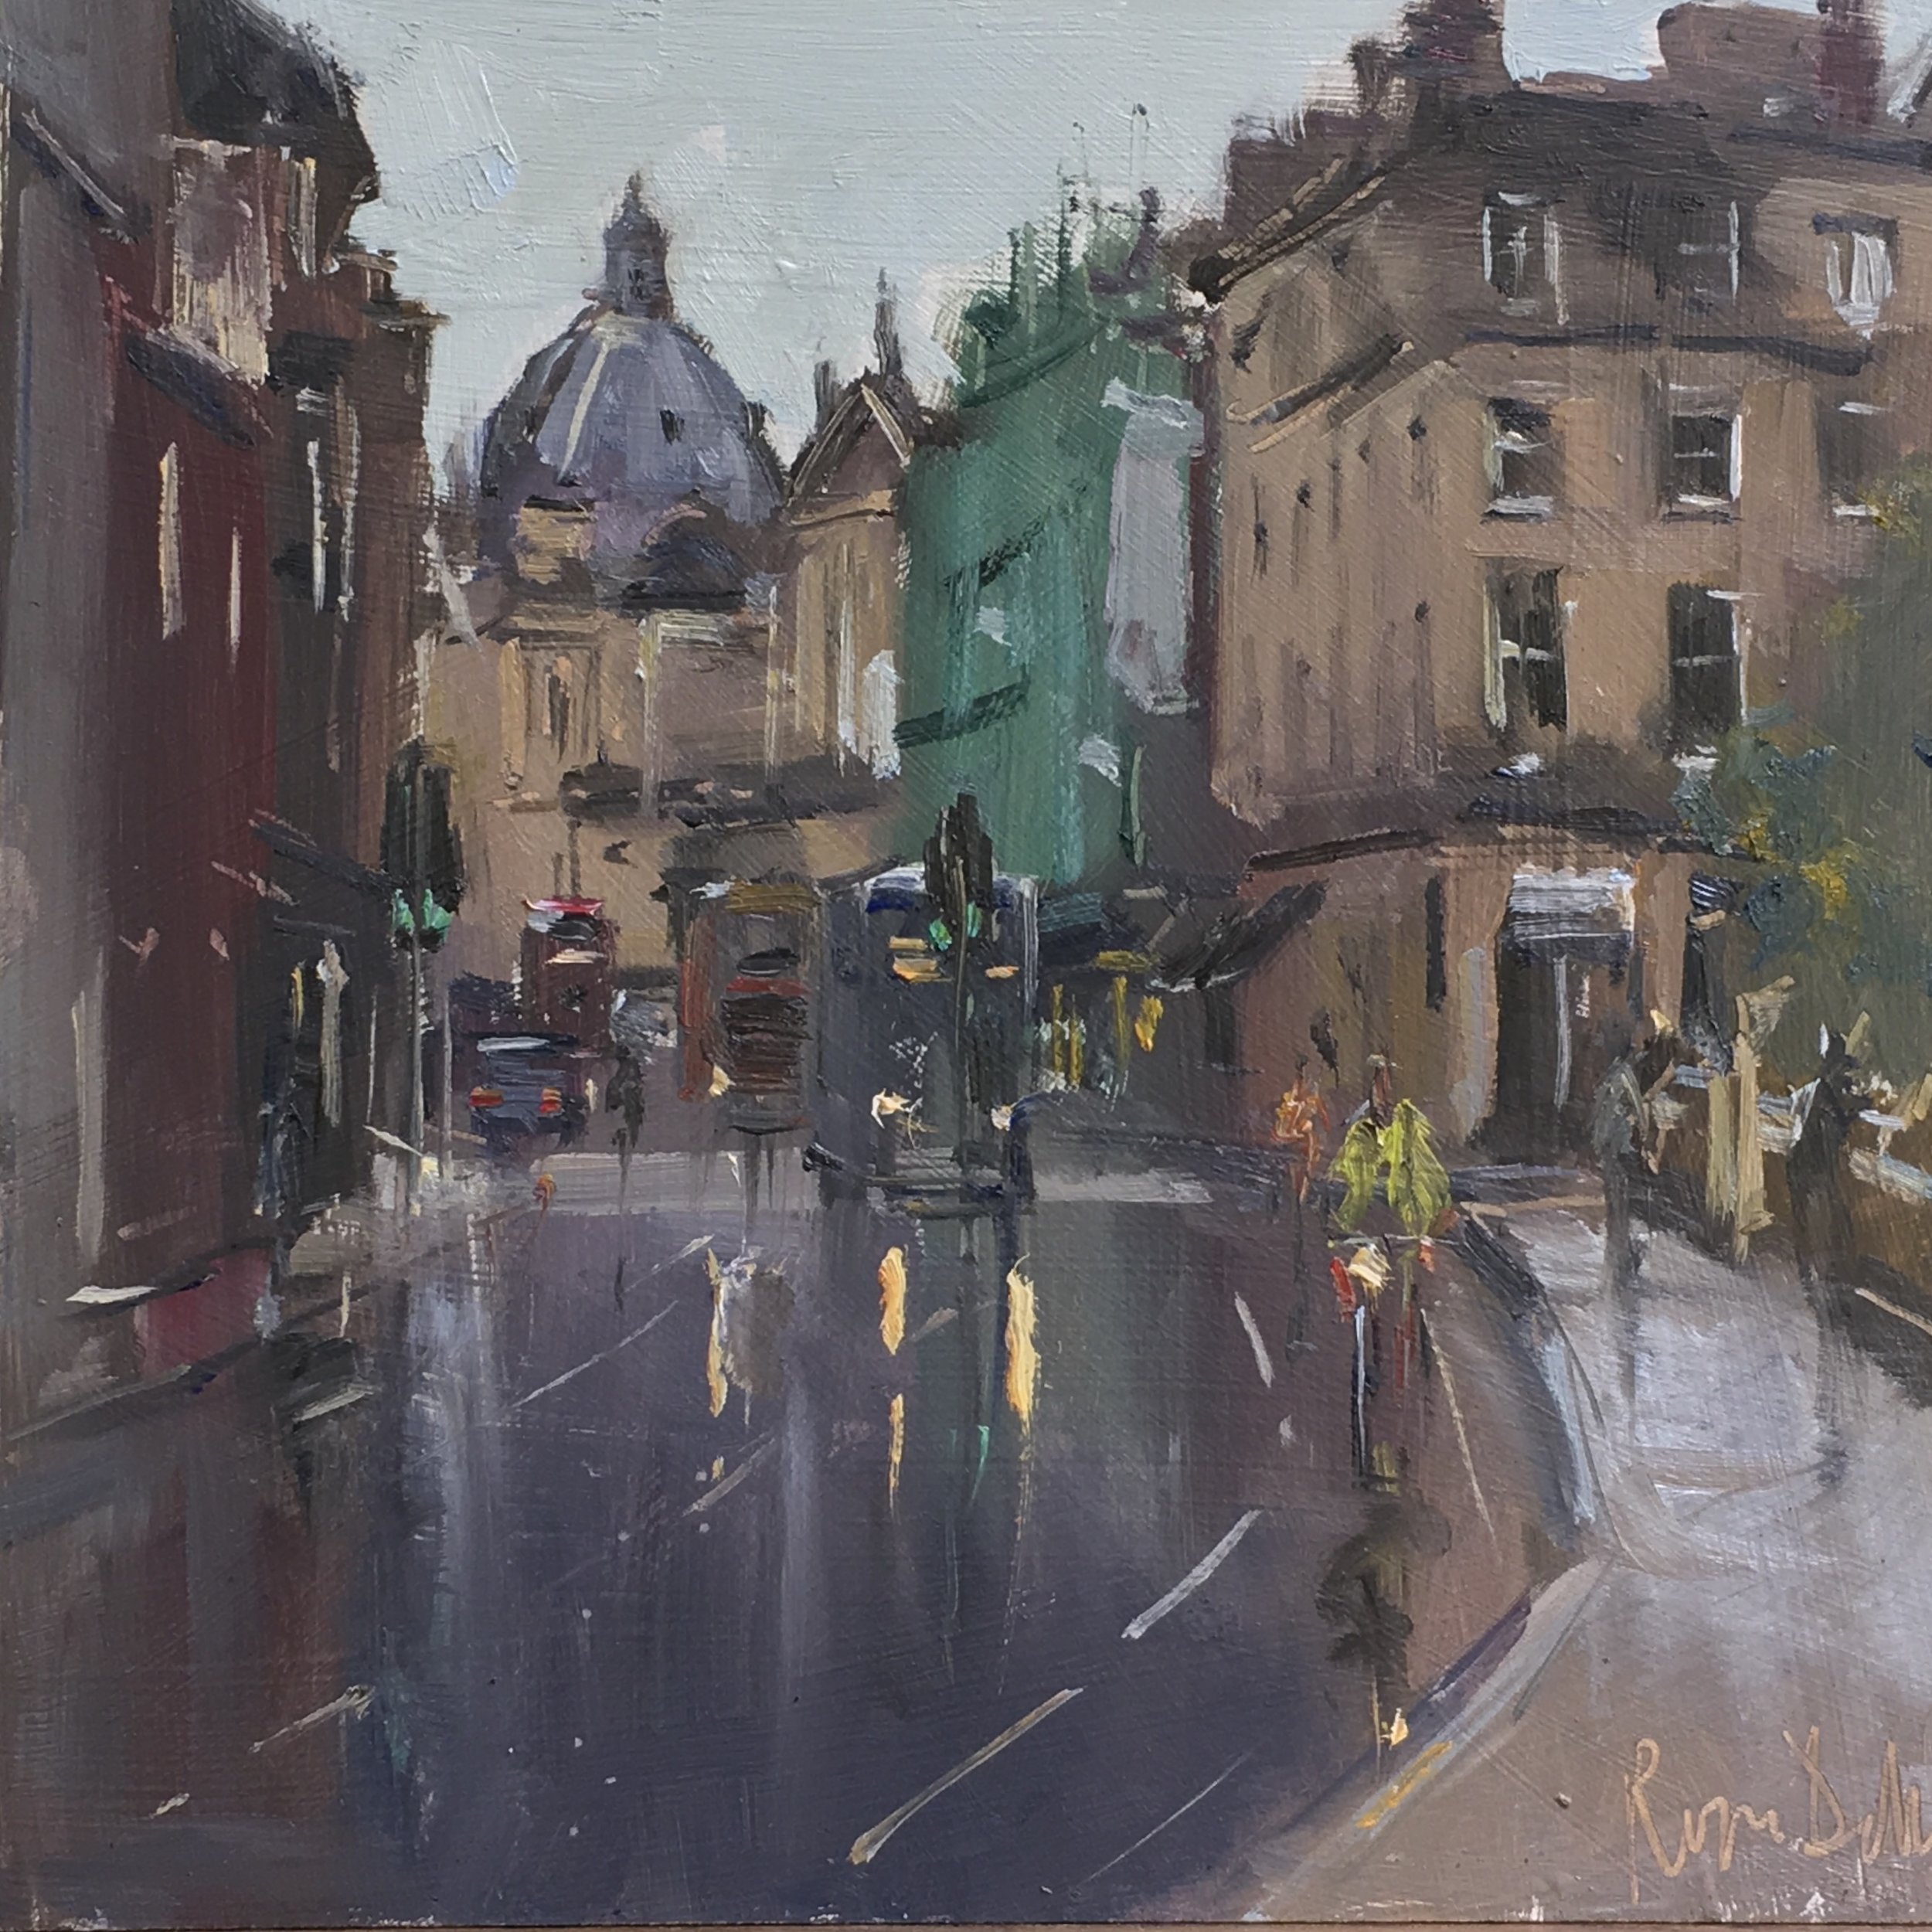 Oxford wet day 12x12 oil on board